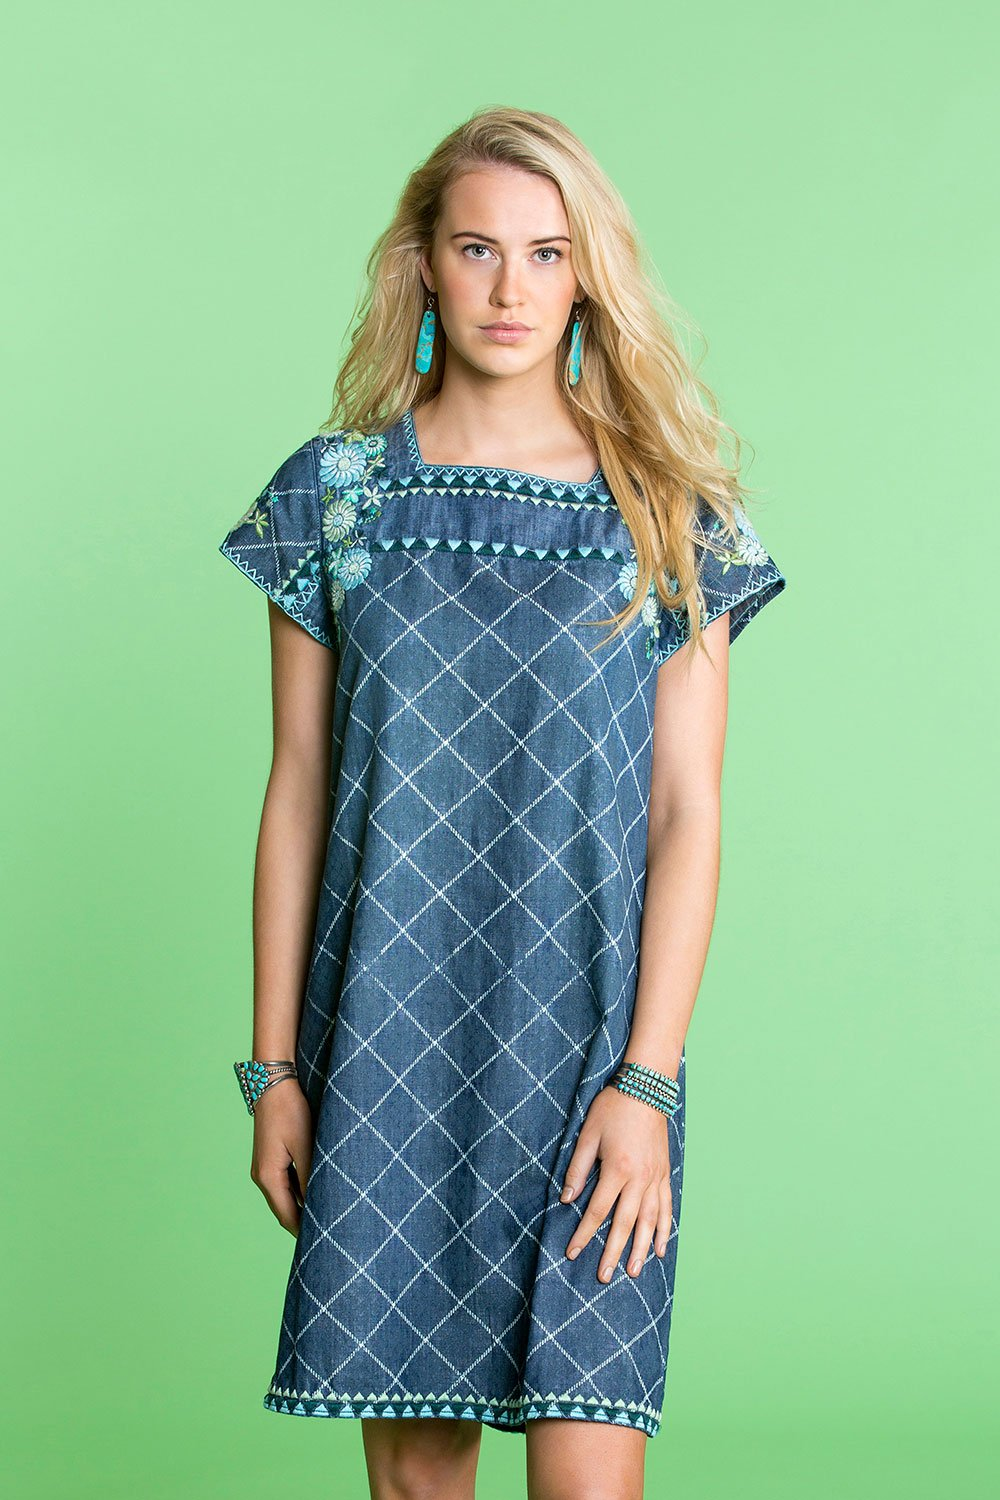 Spacely Sprockets Dress